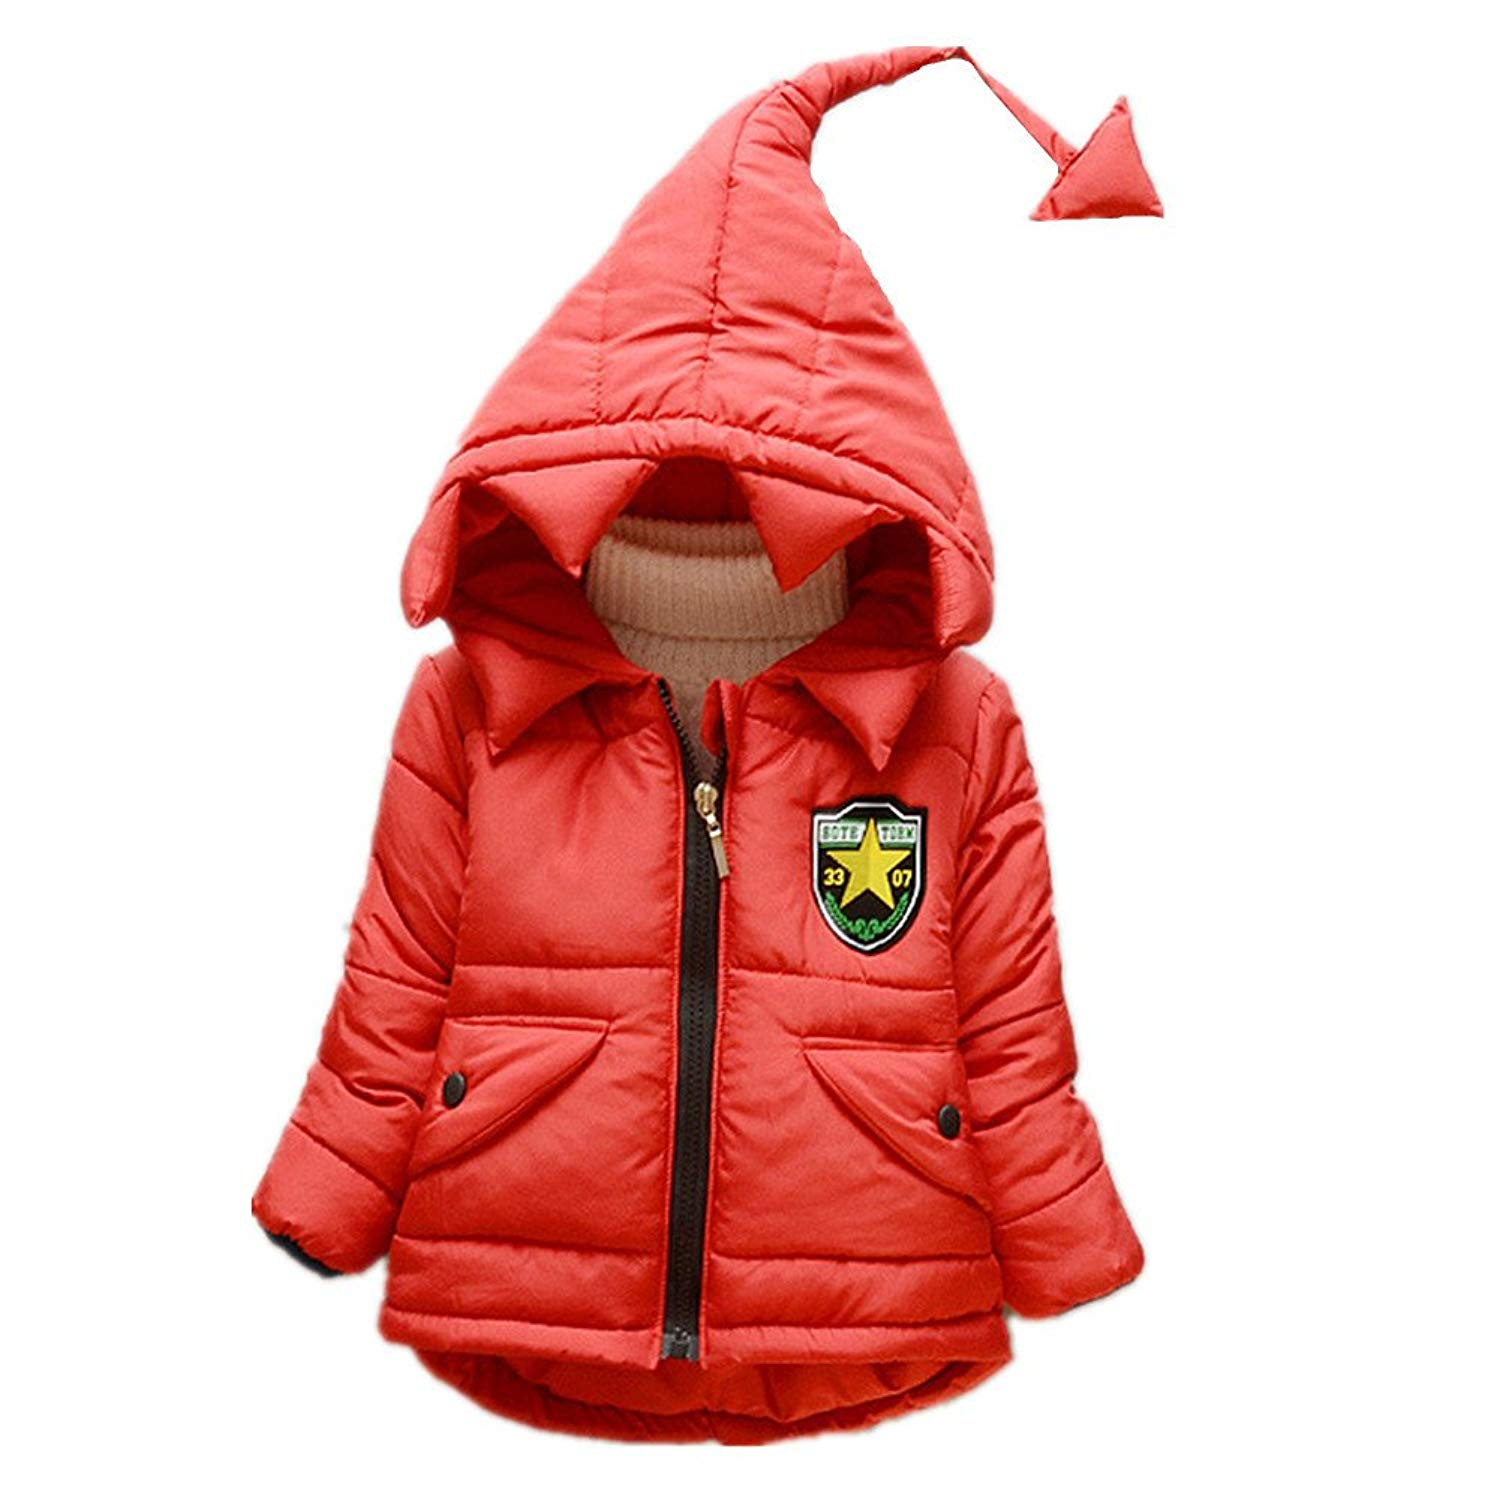 5012525ae Get Quotations · JIEYA Toddler Baby Boys Girls Outerwear Hooded Coat Jacket  Winter Warm Snowsuit